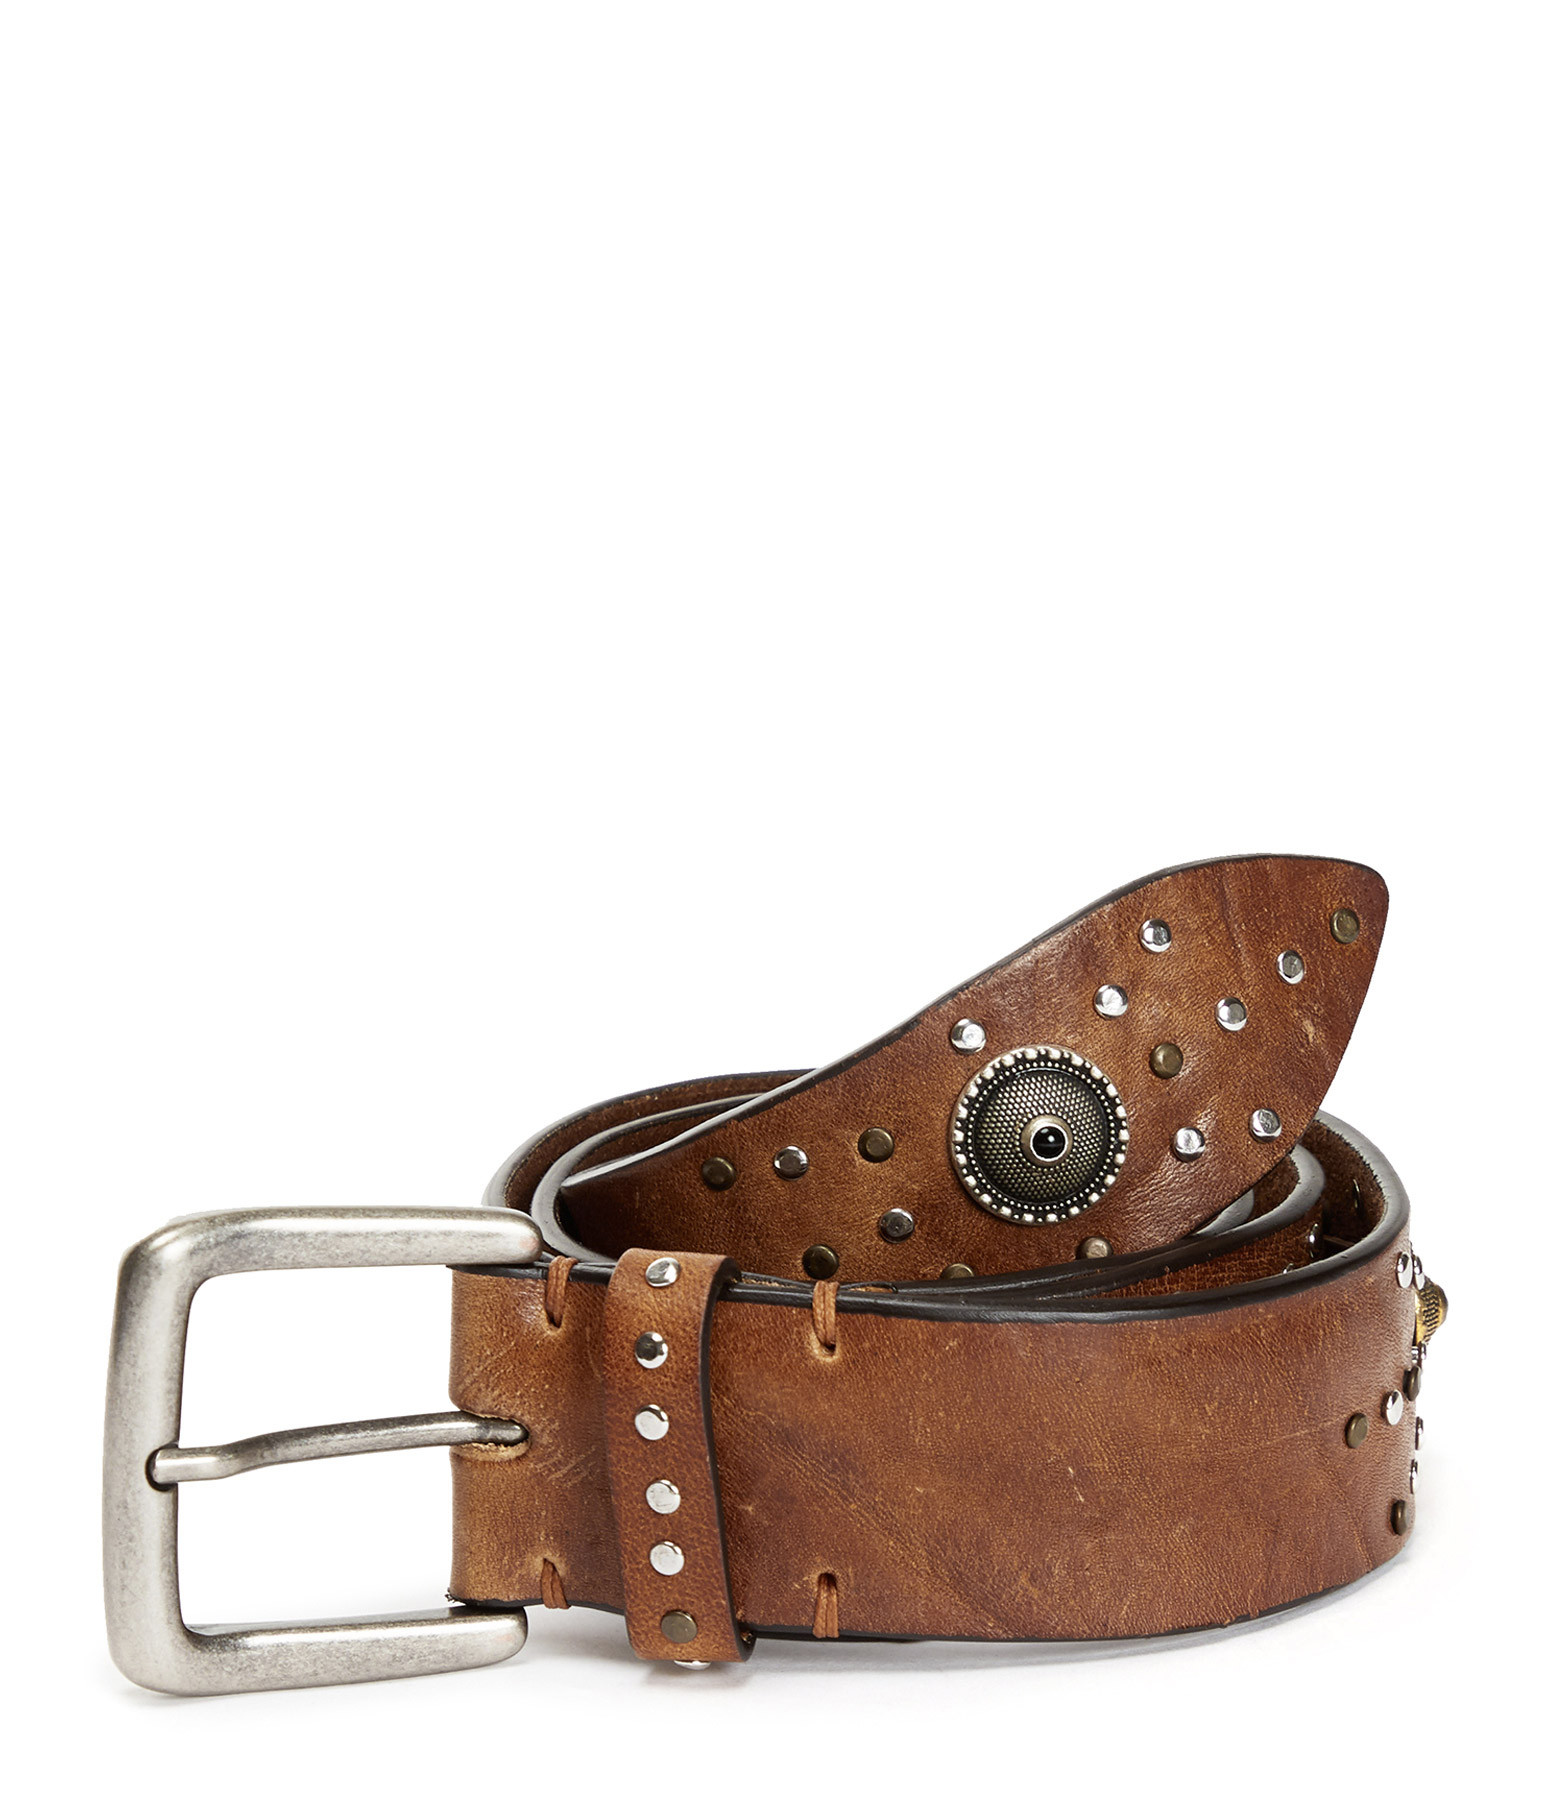 JEANNE VOULAND - Ceinture Cary Studs Cuir Miel